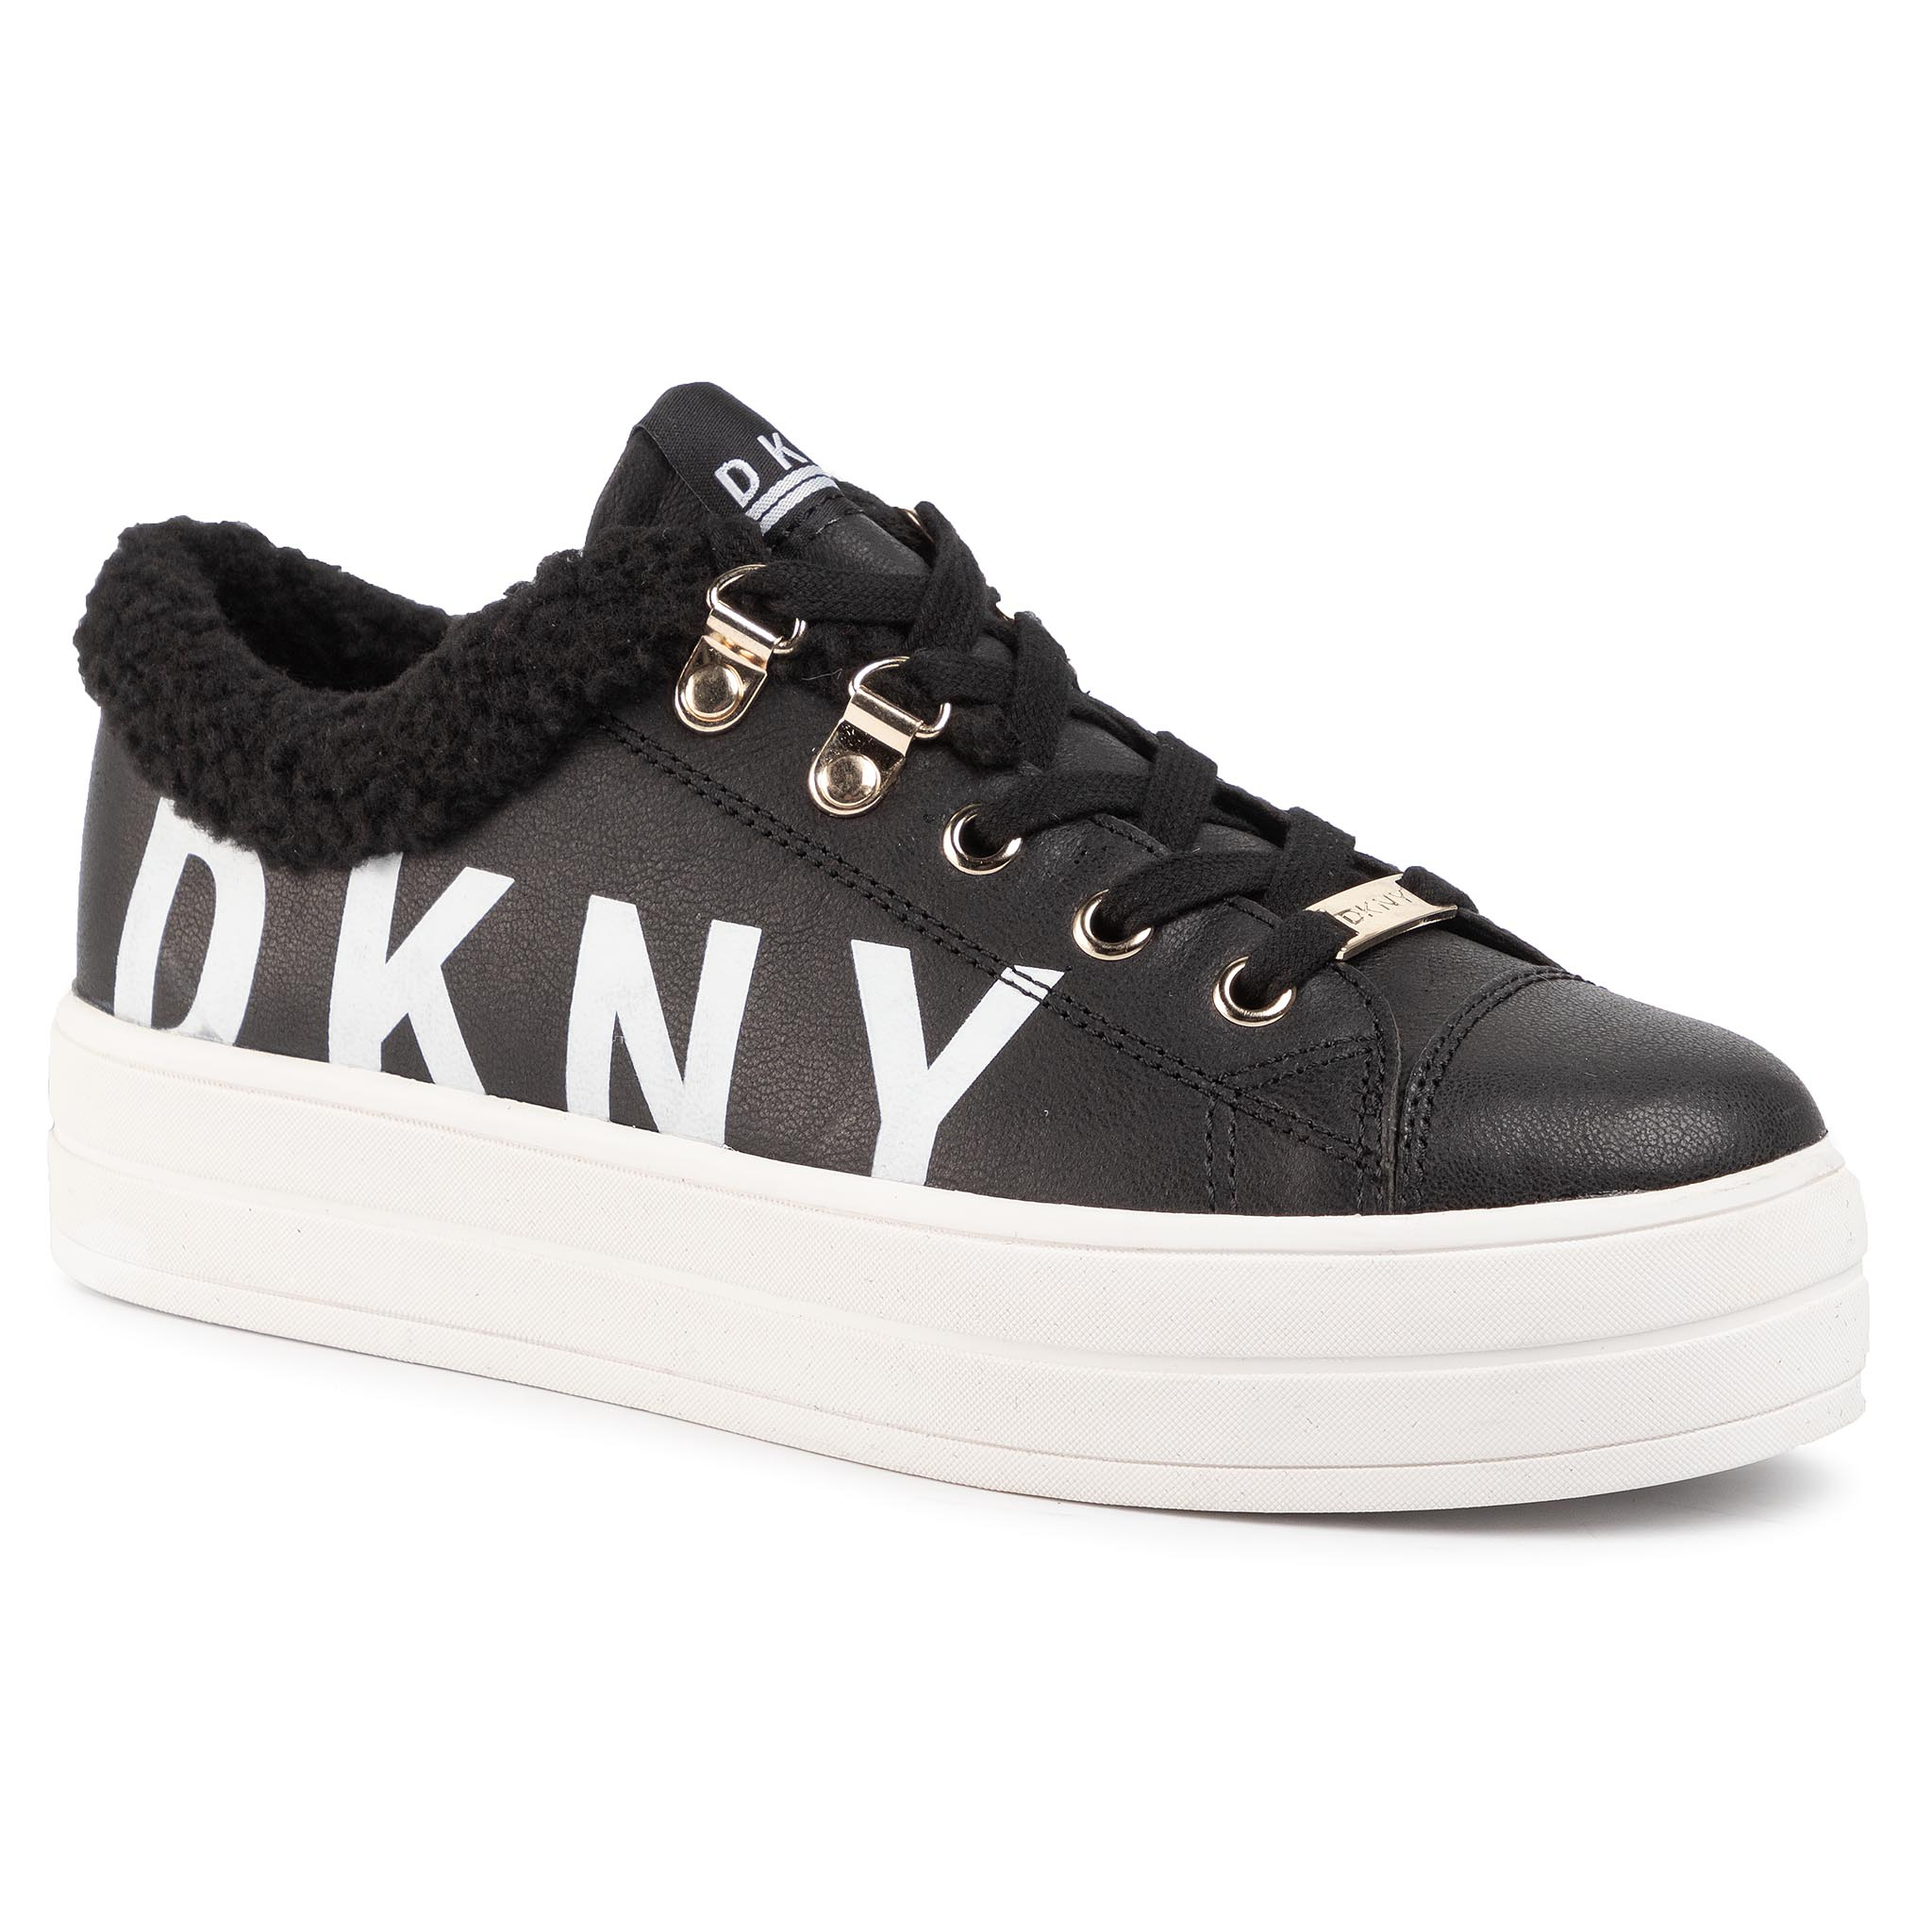 Sneakersy DKNY - Suri K3904168 Black